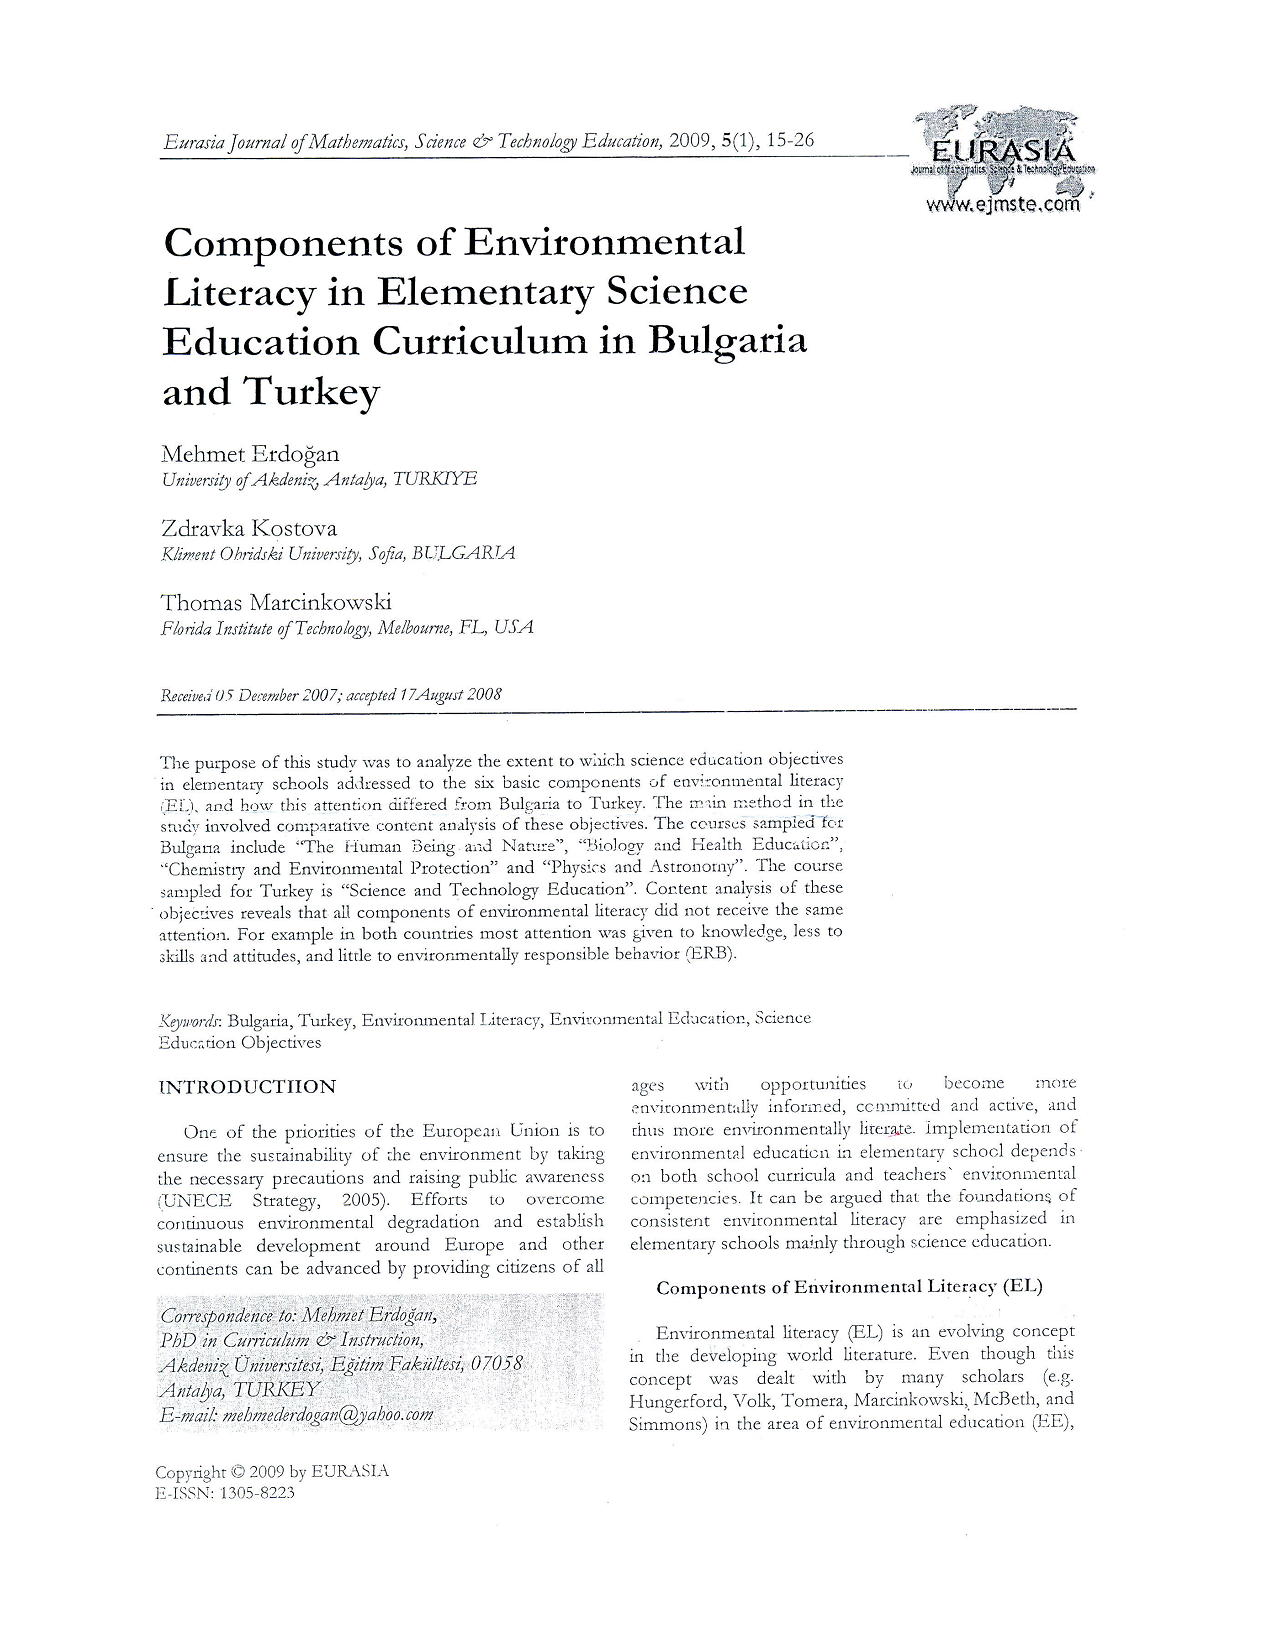 Components of Environmental Literacy in Elementay Science Education Curriculum in Bulgaria and Turkey7